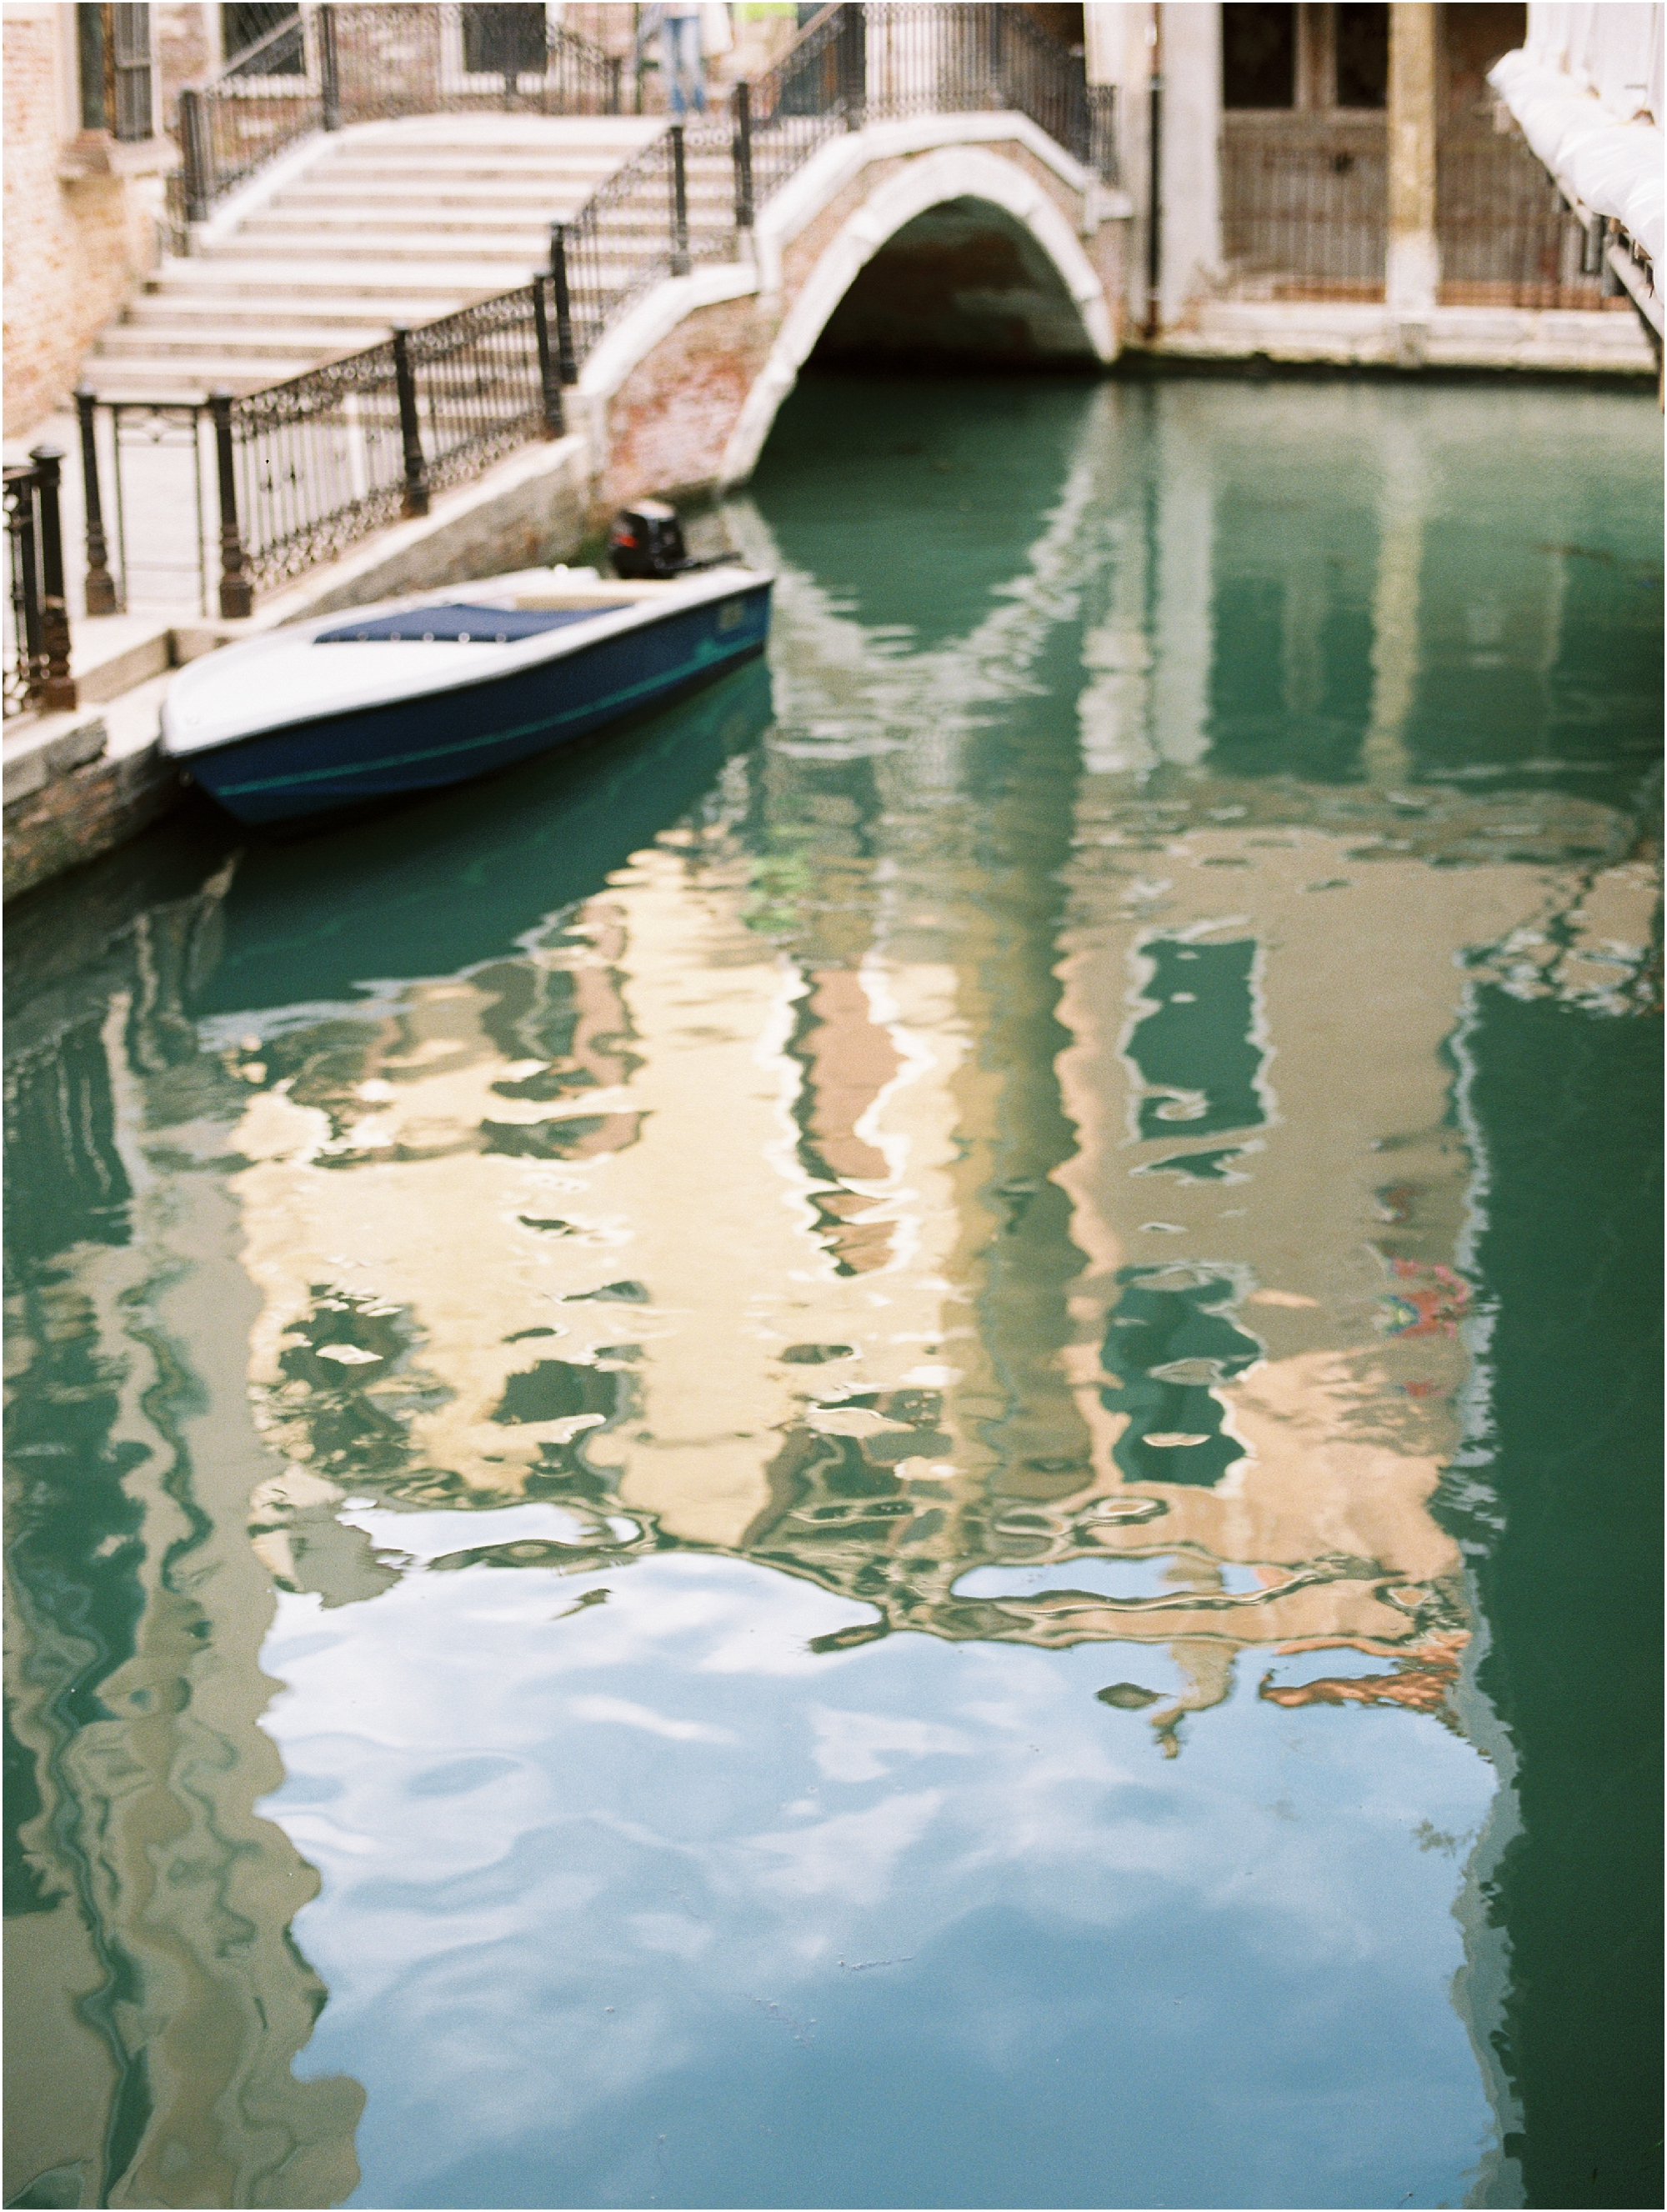 Reflection in water in Venice